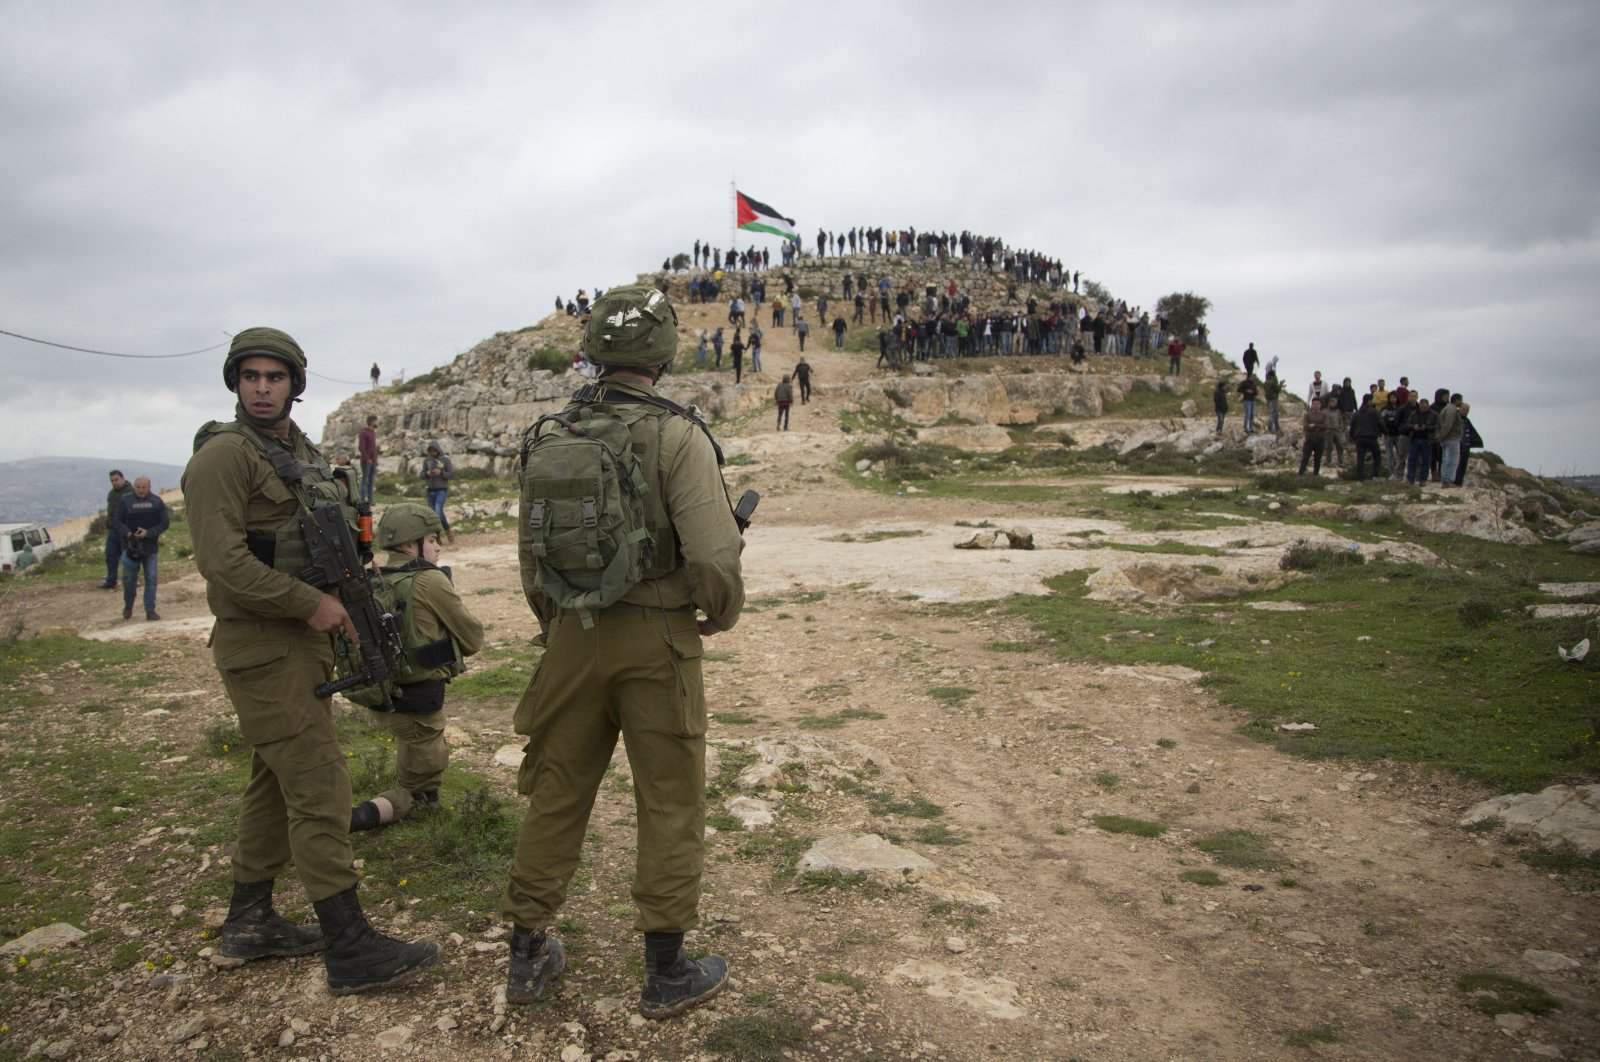 Israeli soldiers take position as Palestinian demonstrators gather during a protest against expansion of Israeli settlements, in the West Bank village of Beita near Nablus, March 2, 2020. (AP Photo)